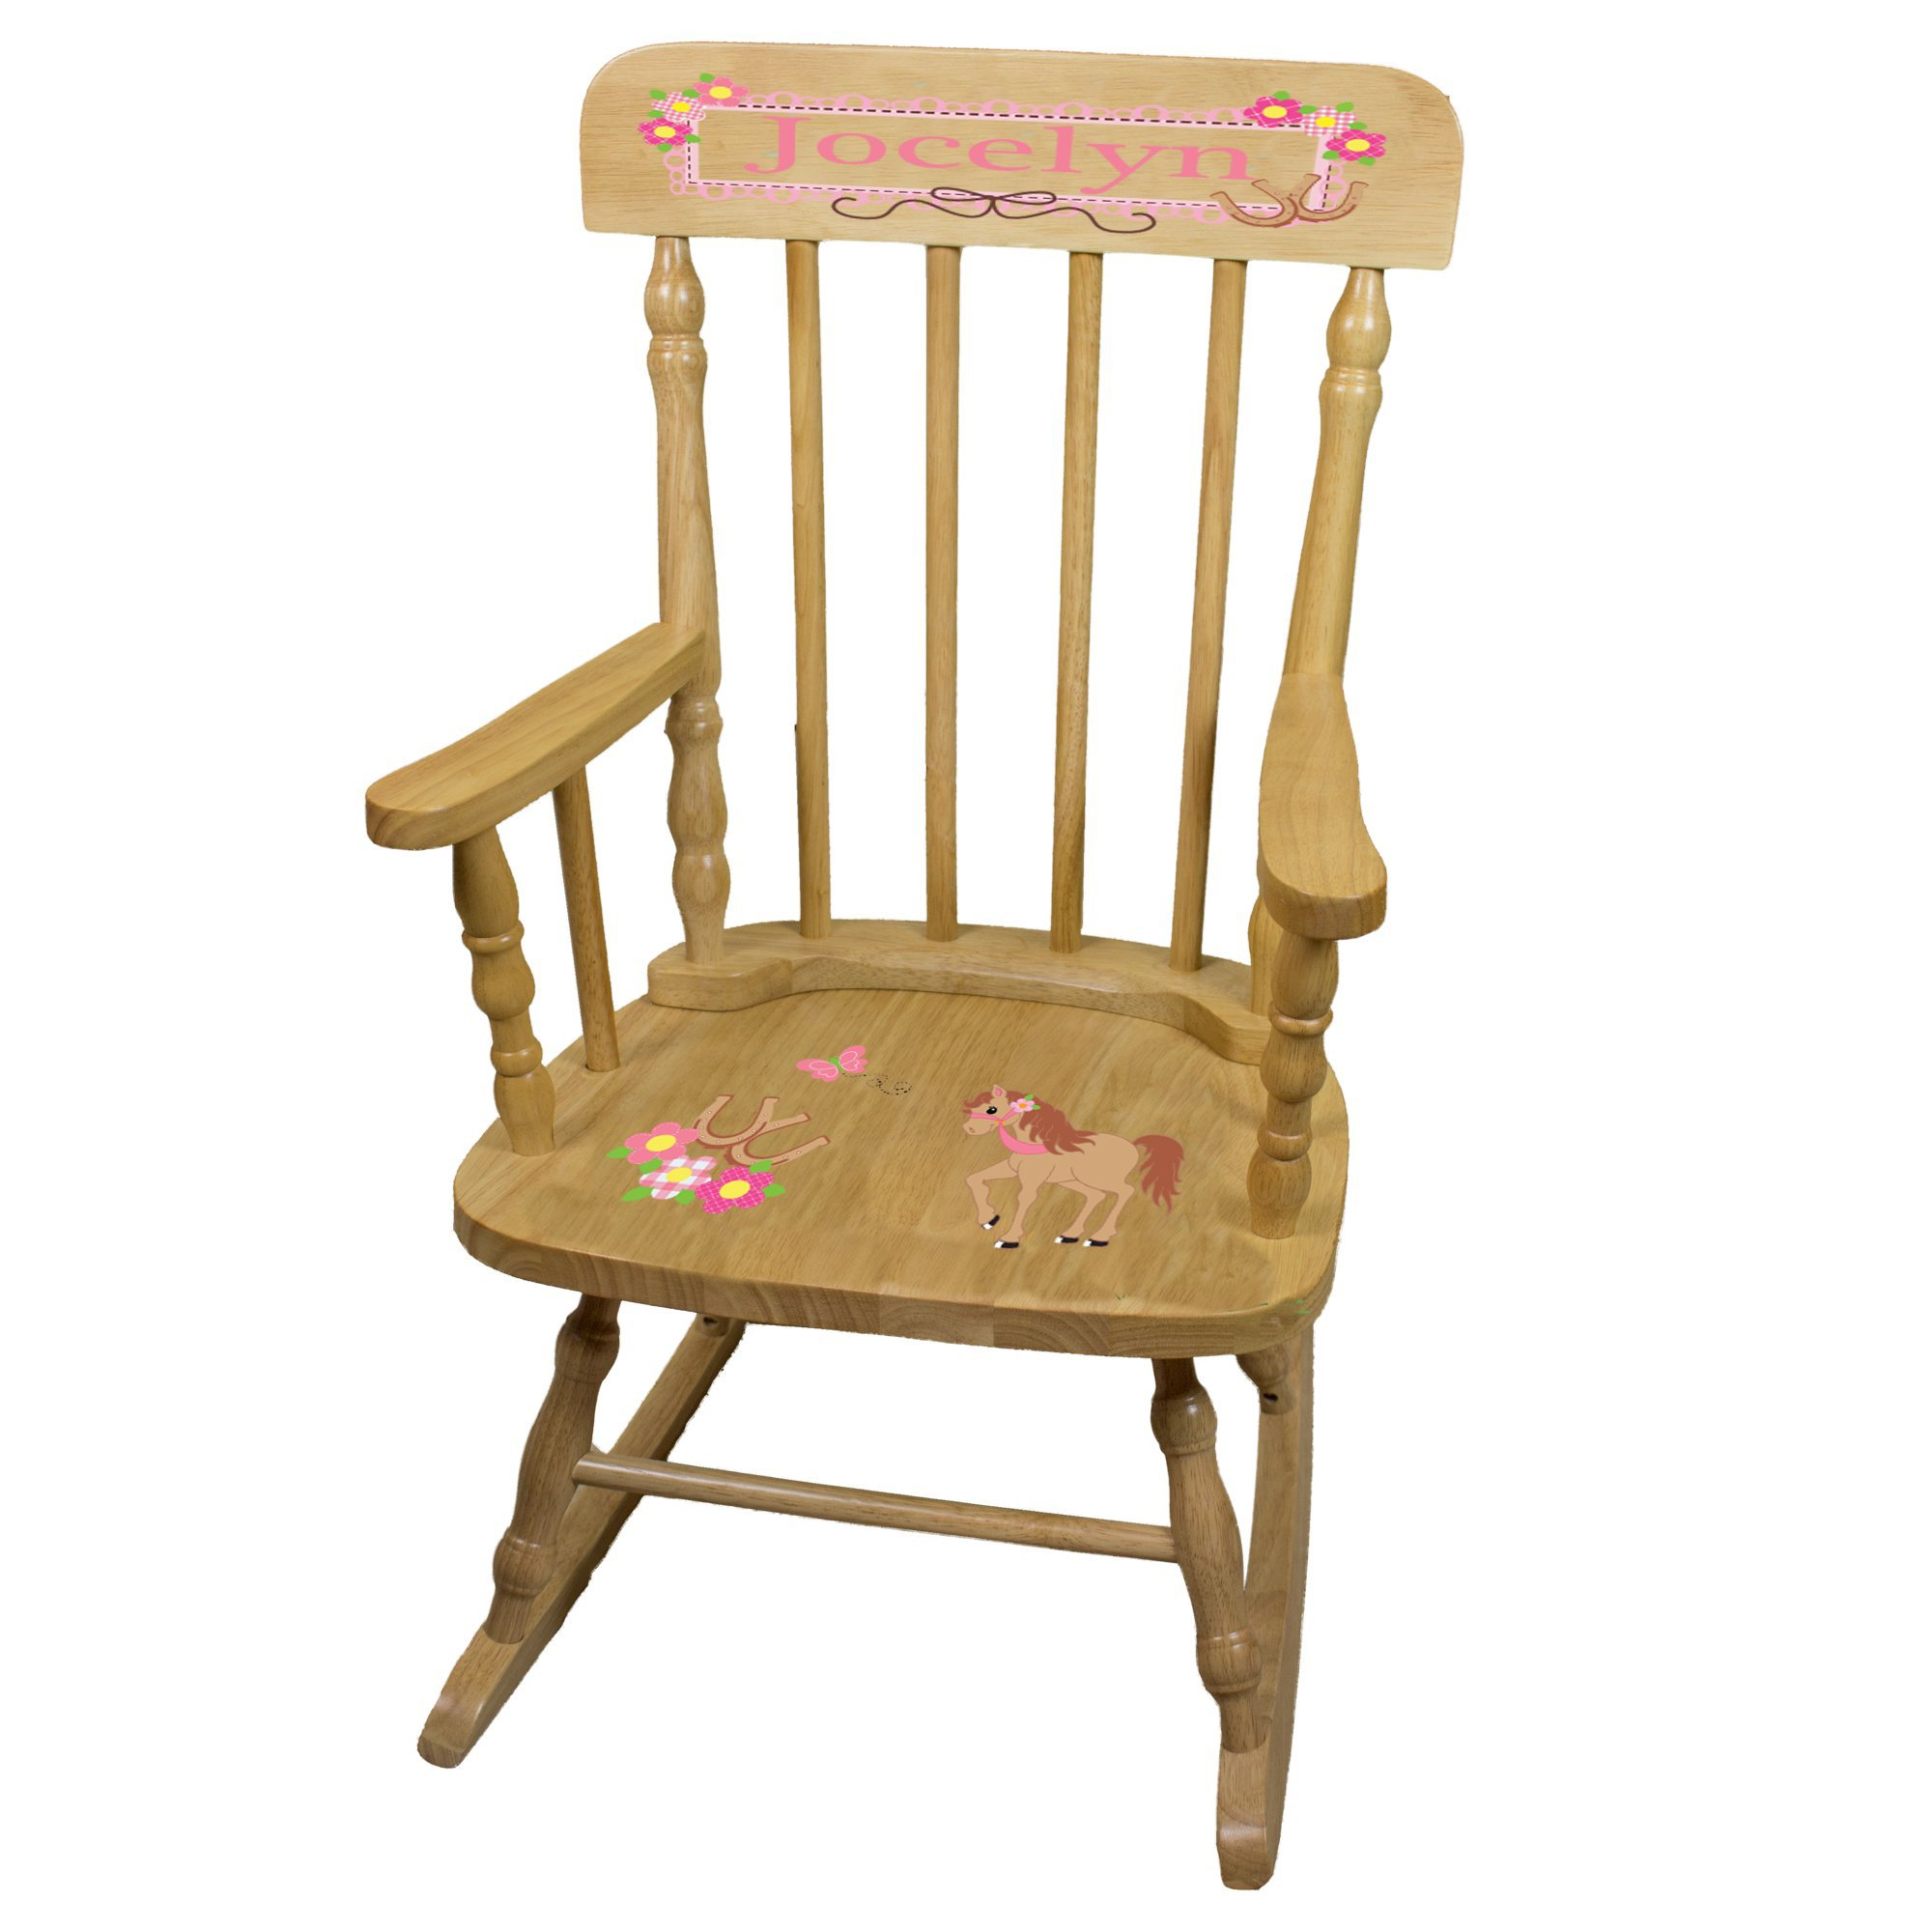 Personalized Ponies Prancing Wooden Childrens Rocking Chair